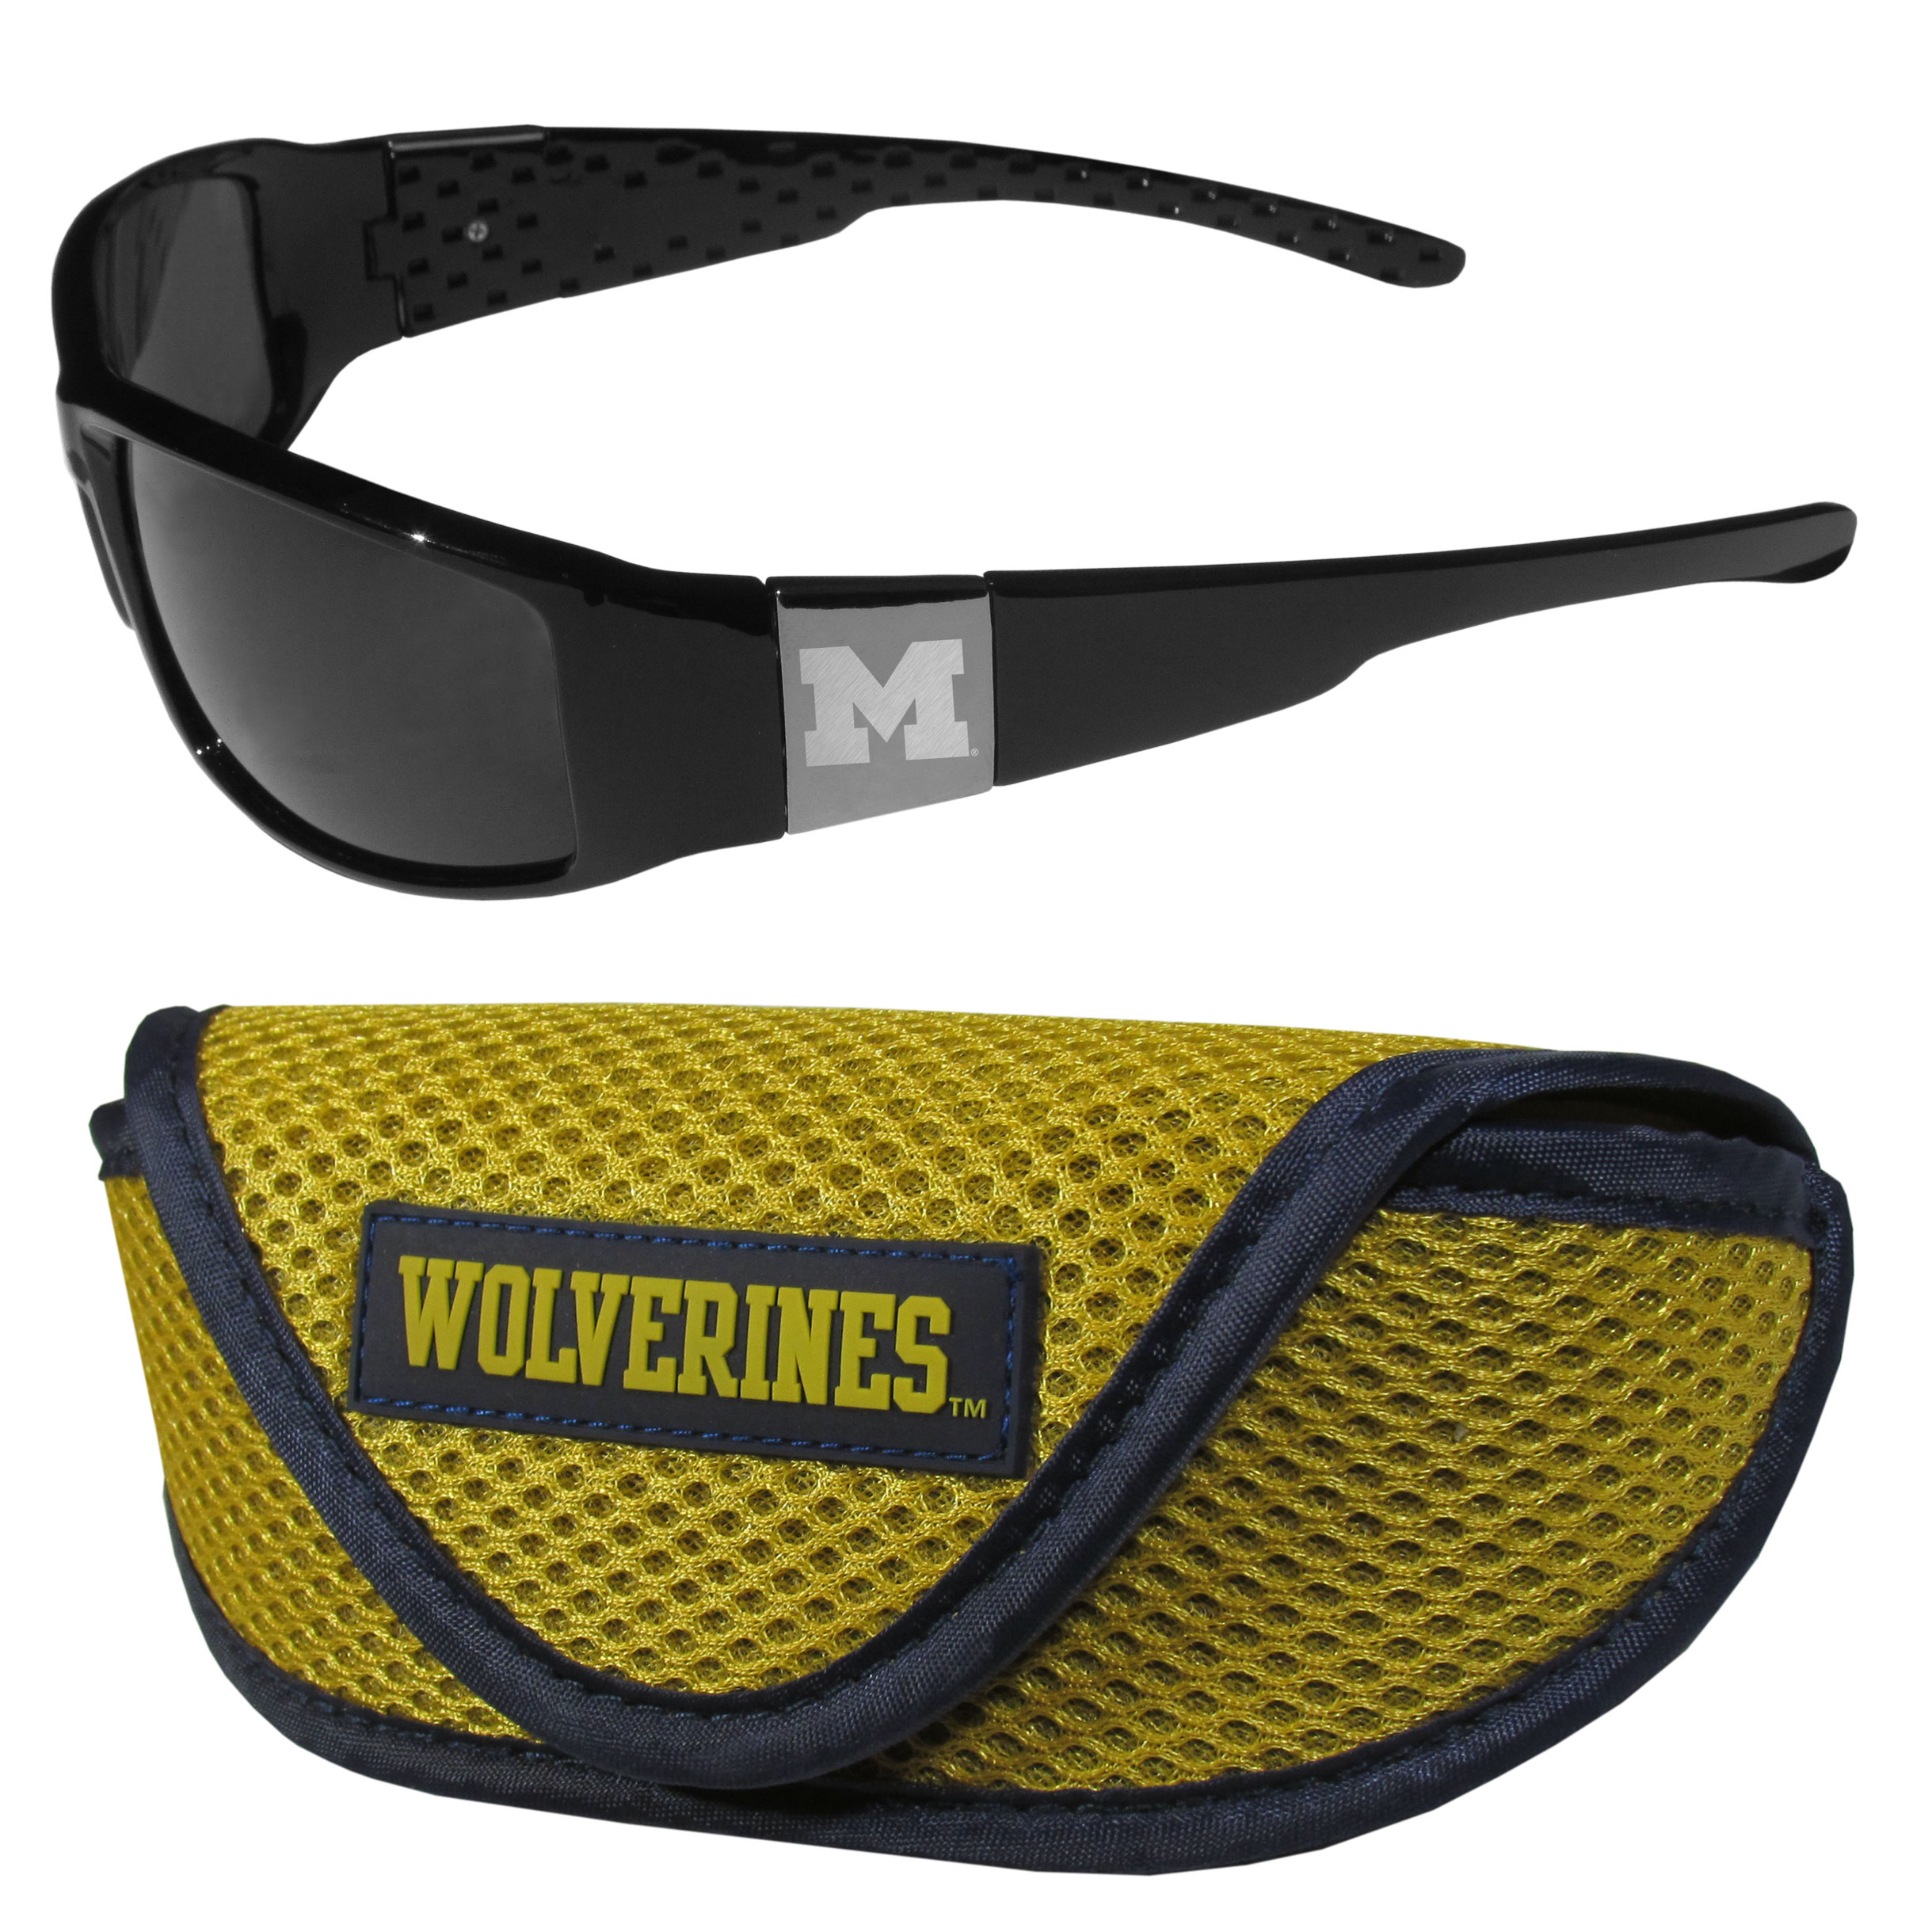 Michigan Wolverines Chrome Wrap Sunglasses and Sport Carrying Case - These designer inspired frames have a sleek look in all black with high-polish chrome Michigan Wolverines shields on each arm with an etched logo. The shades are perfect any outdoor activity like; golfing, driving, hiking, fishing or cheering on the team at a tailgating event or an at home game day BBQ with a lens rating of 100% UVA/UVB for maximum UV protection. The high-quality frames are as durable as they are fashionable and with their classic look they are perfect fan accessory that can be worn everyday for every occasion. The shades come with a zippered hard shell case to keep your sunglasses safe.